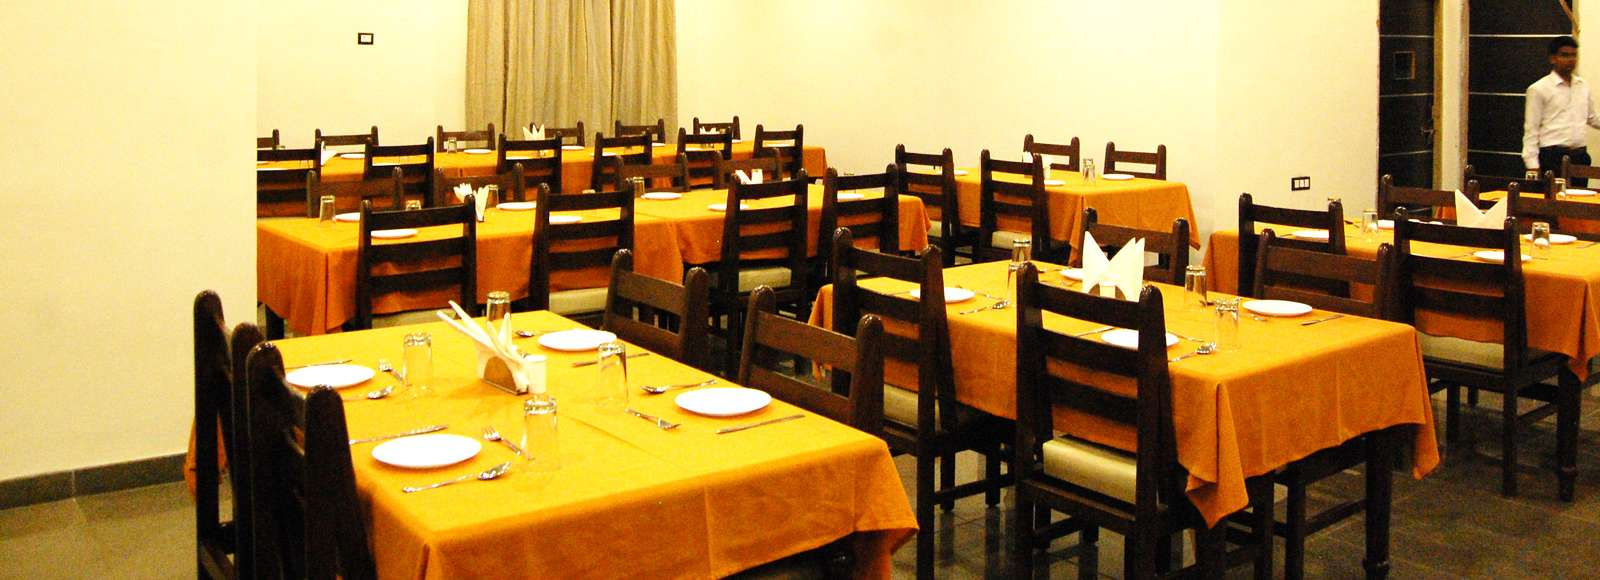 Family_Hotels_in_Udaipur-compressed